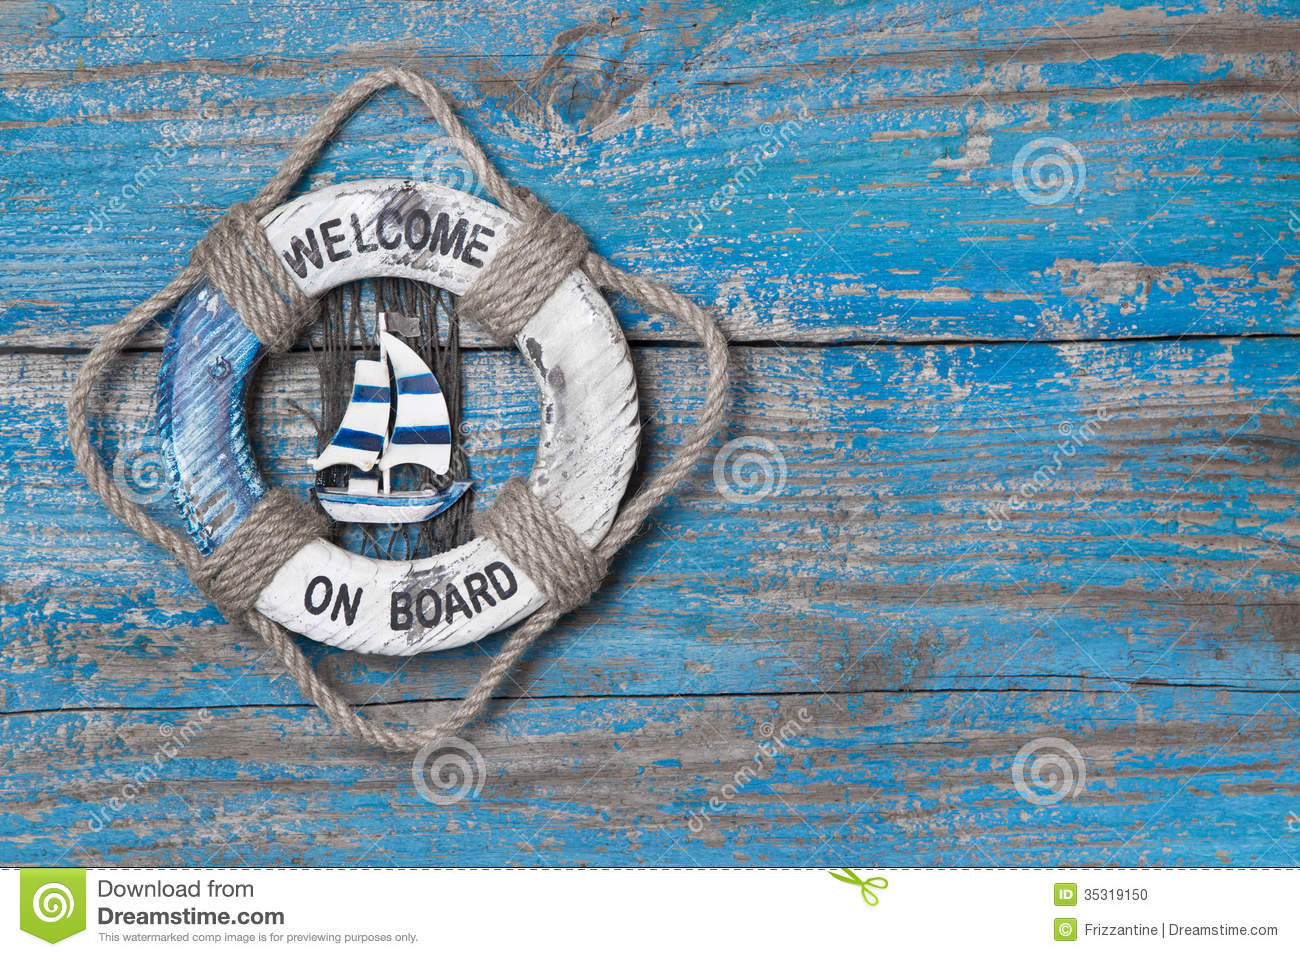 Welcome on board - lifebuoy blue wooden background.